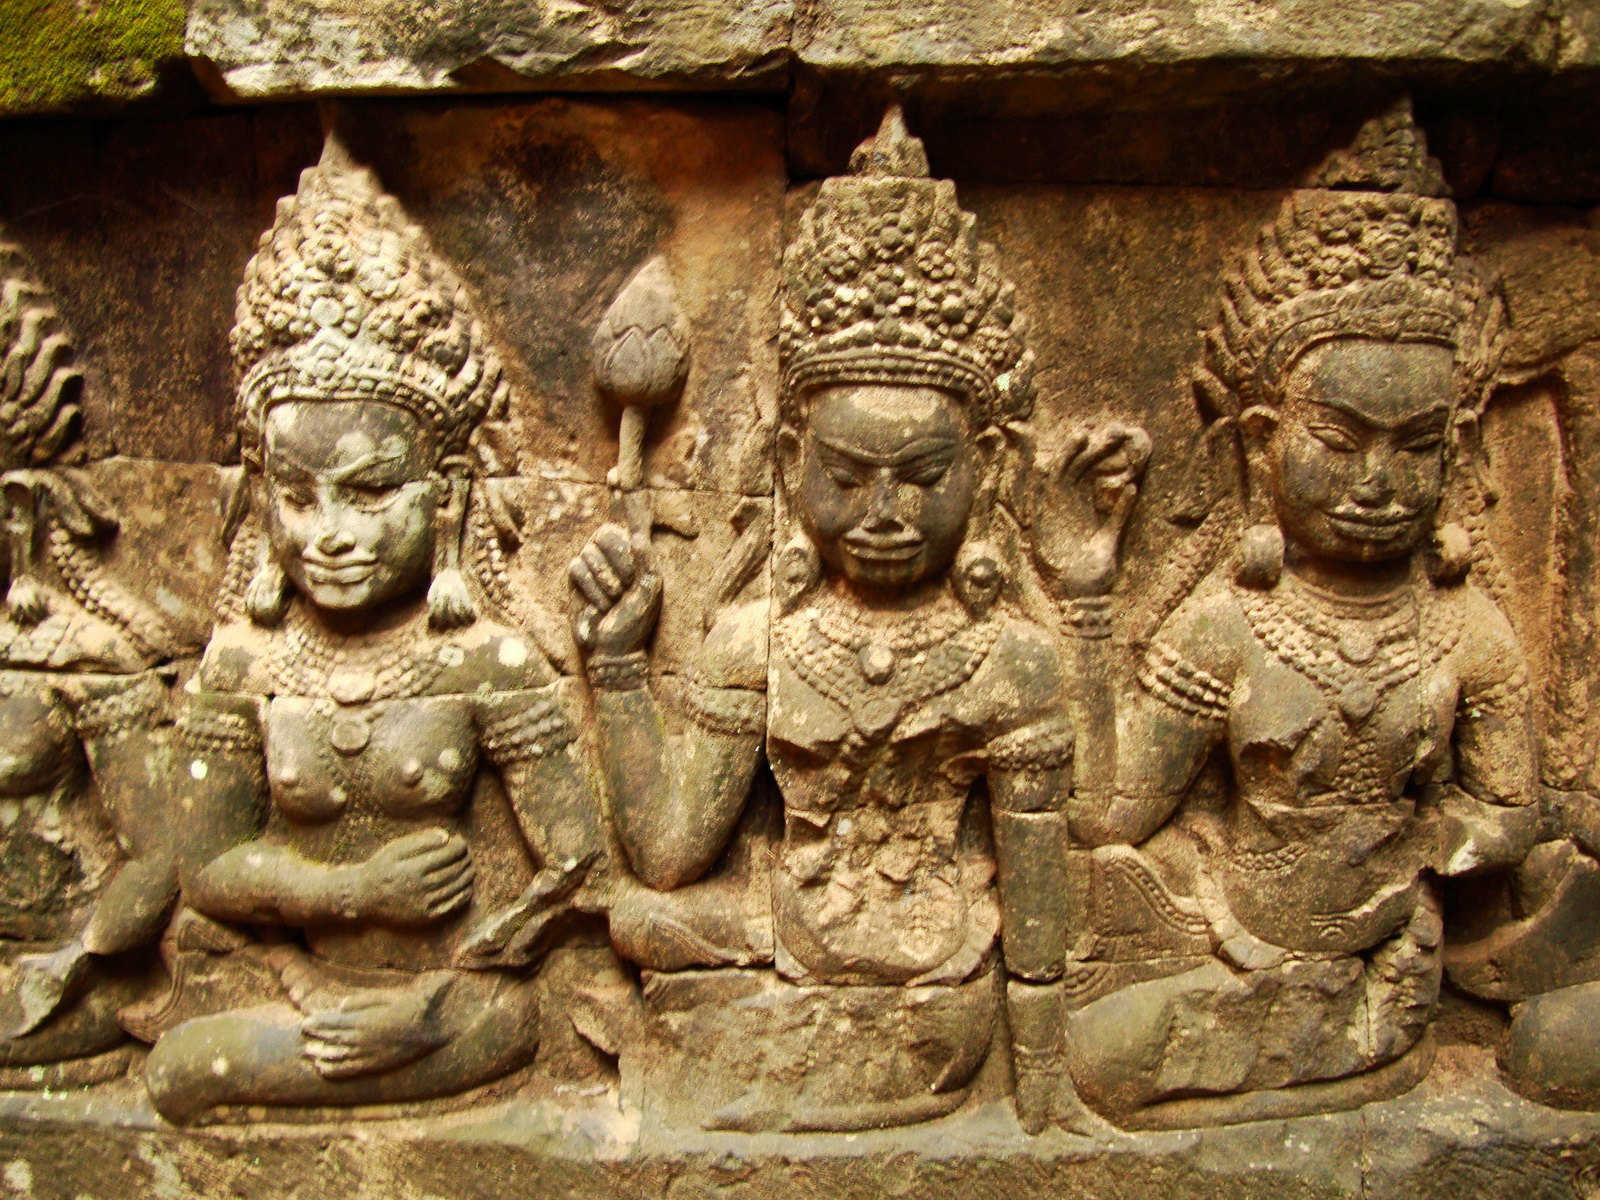 Leper King Terrace hidden wall underworld Nagas and deities 131